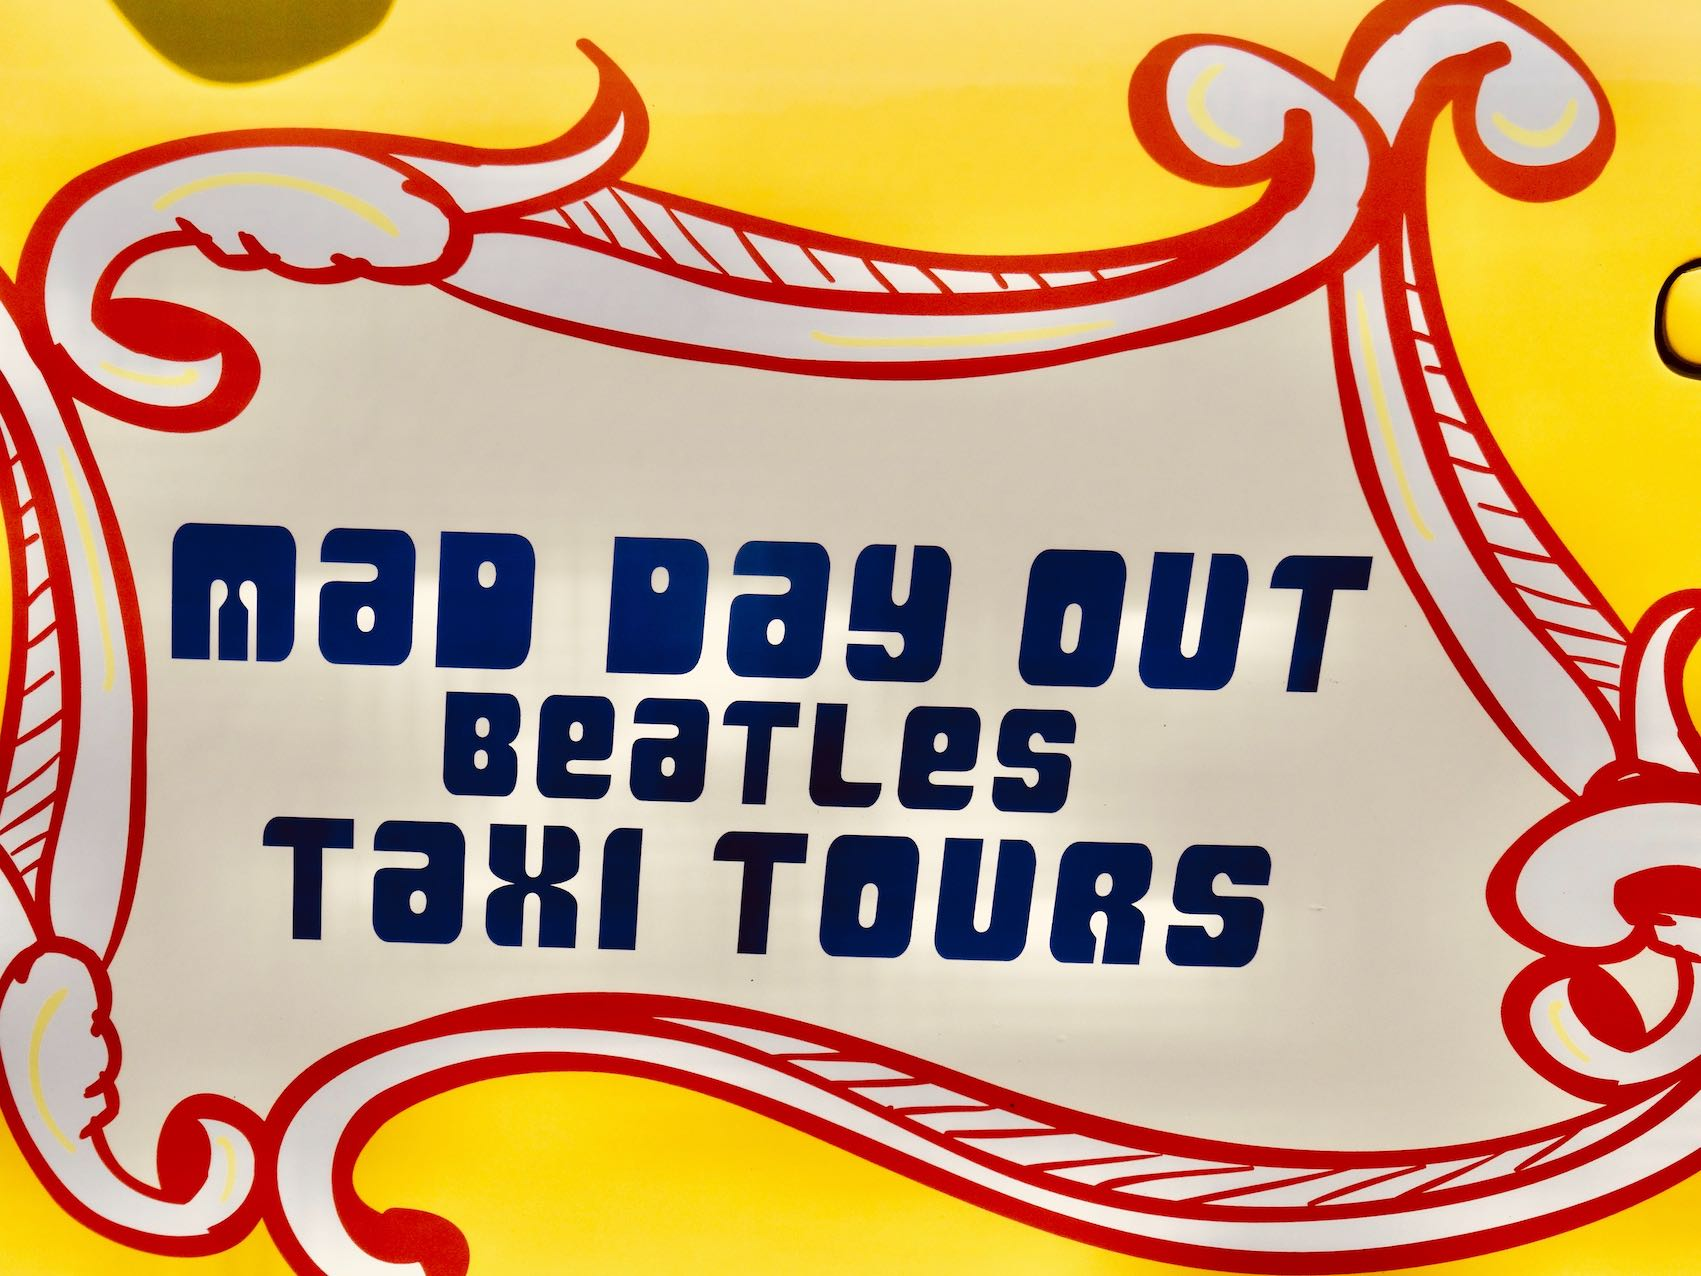 Best Beatles Taxi Tour in Liverpool.